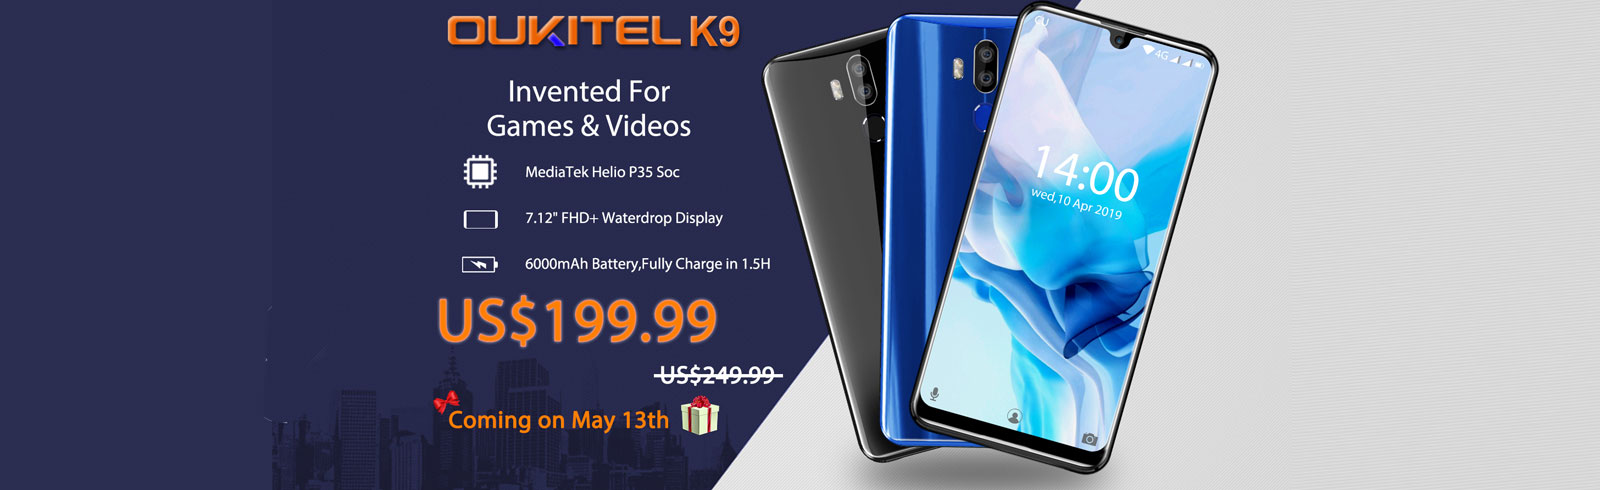 Oukitel K9 goes on sale on May 13th with a huge discount